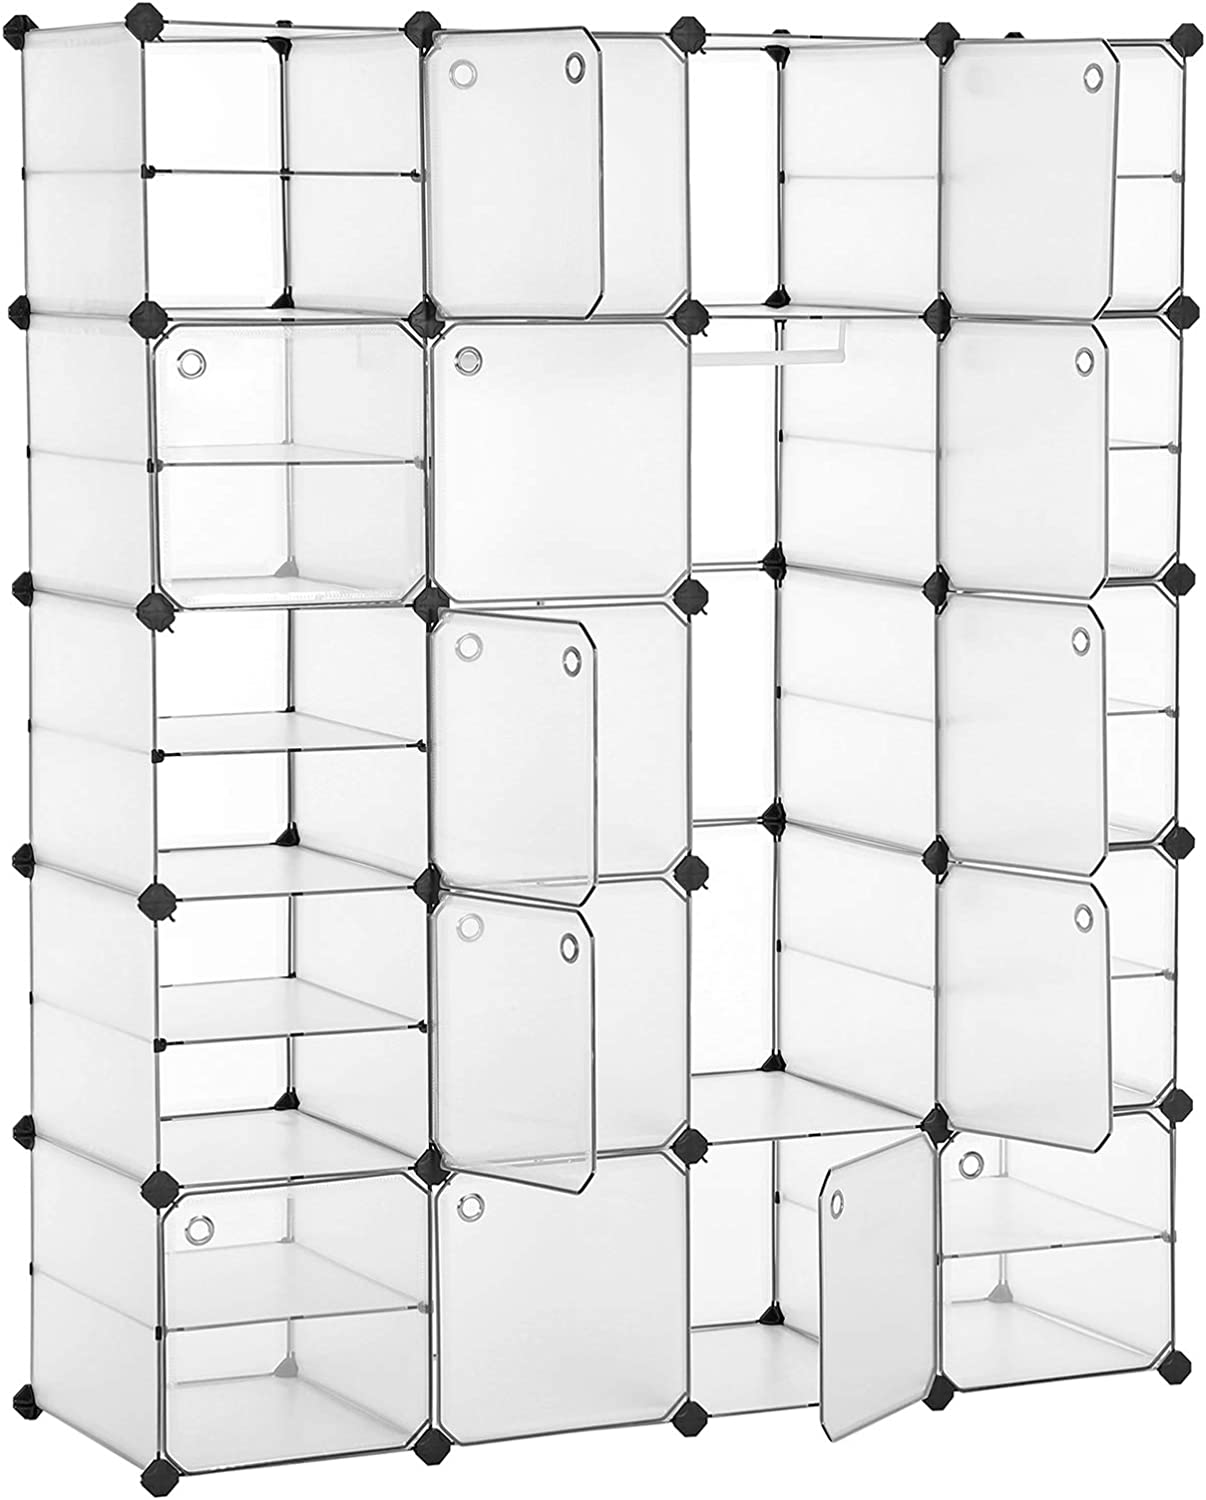 Versatile Modular Organizer with Hooked Doors Portable Storage for Bedroom White ULPC801W 2 Hanging Sections SONGMICS Portable Closet Wardrobe with 20 Slots 10 Customizable Shelves